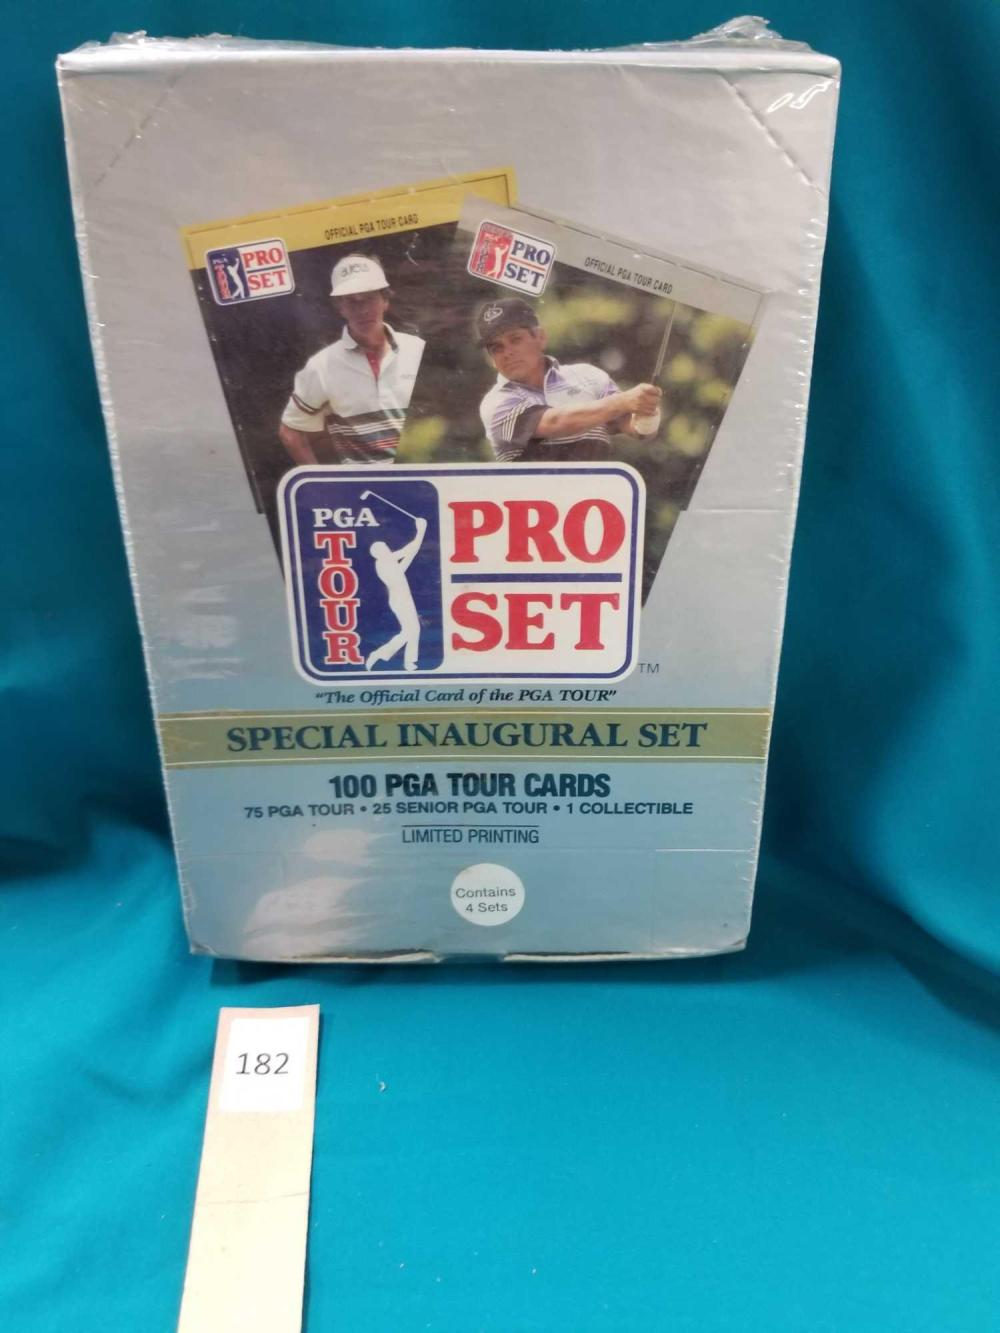 PGA TOUR PRO CARD SET - SPECIAL INAUGURAL SET IN THE BOX